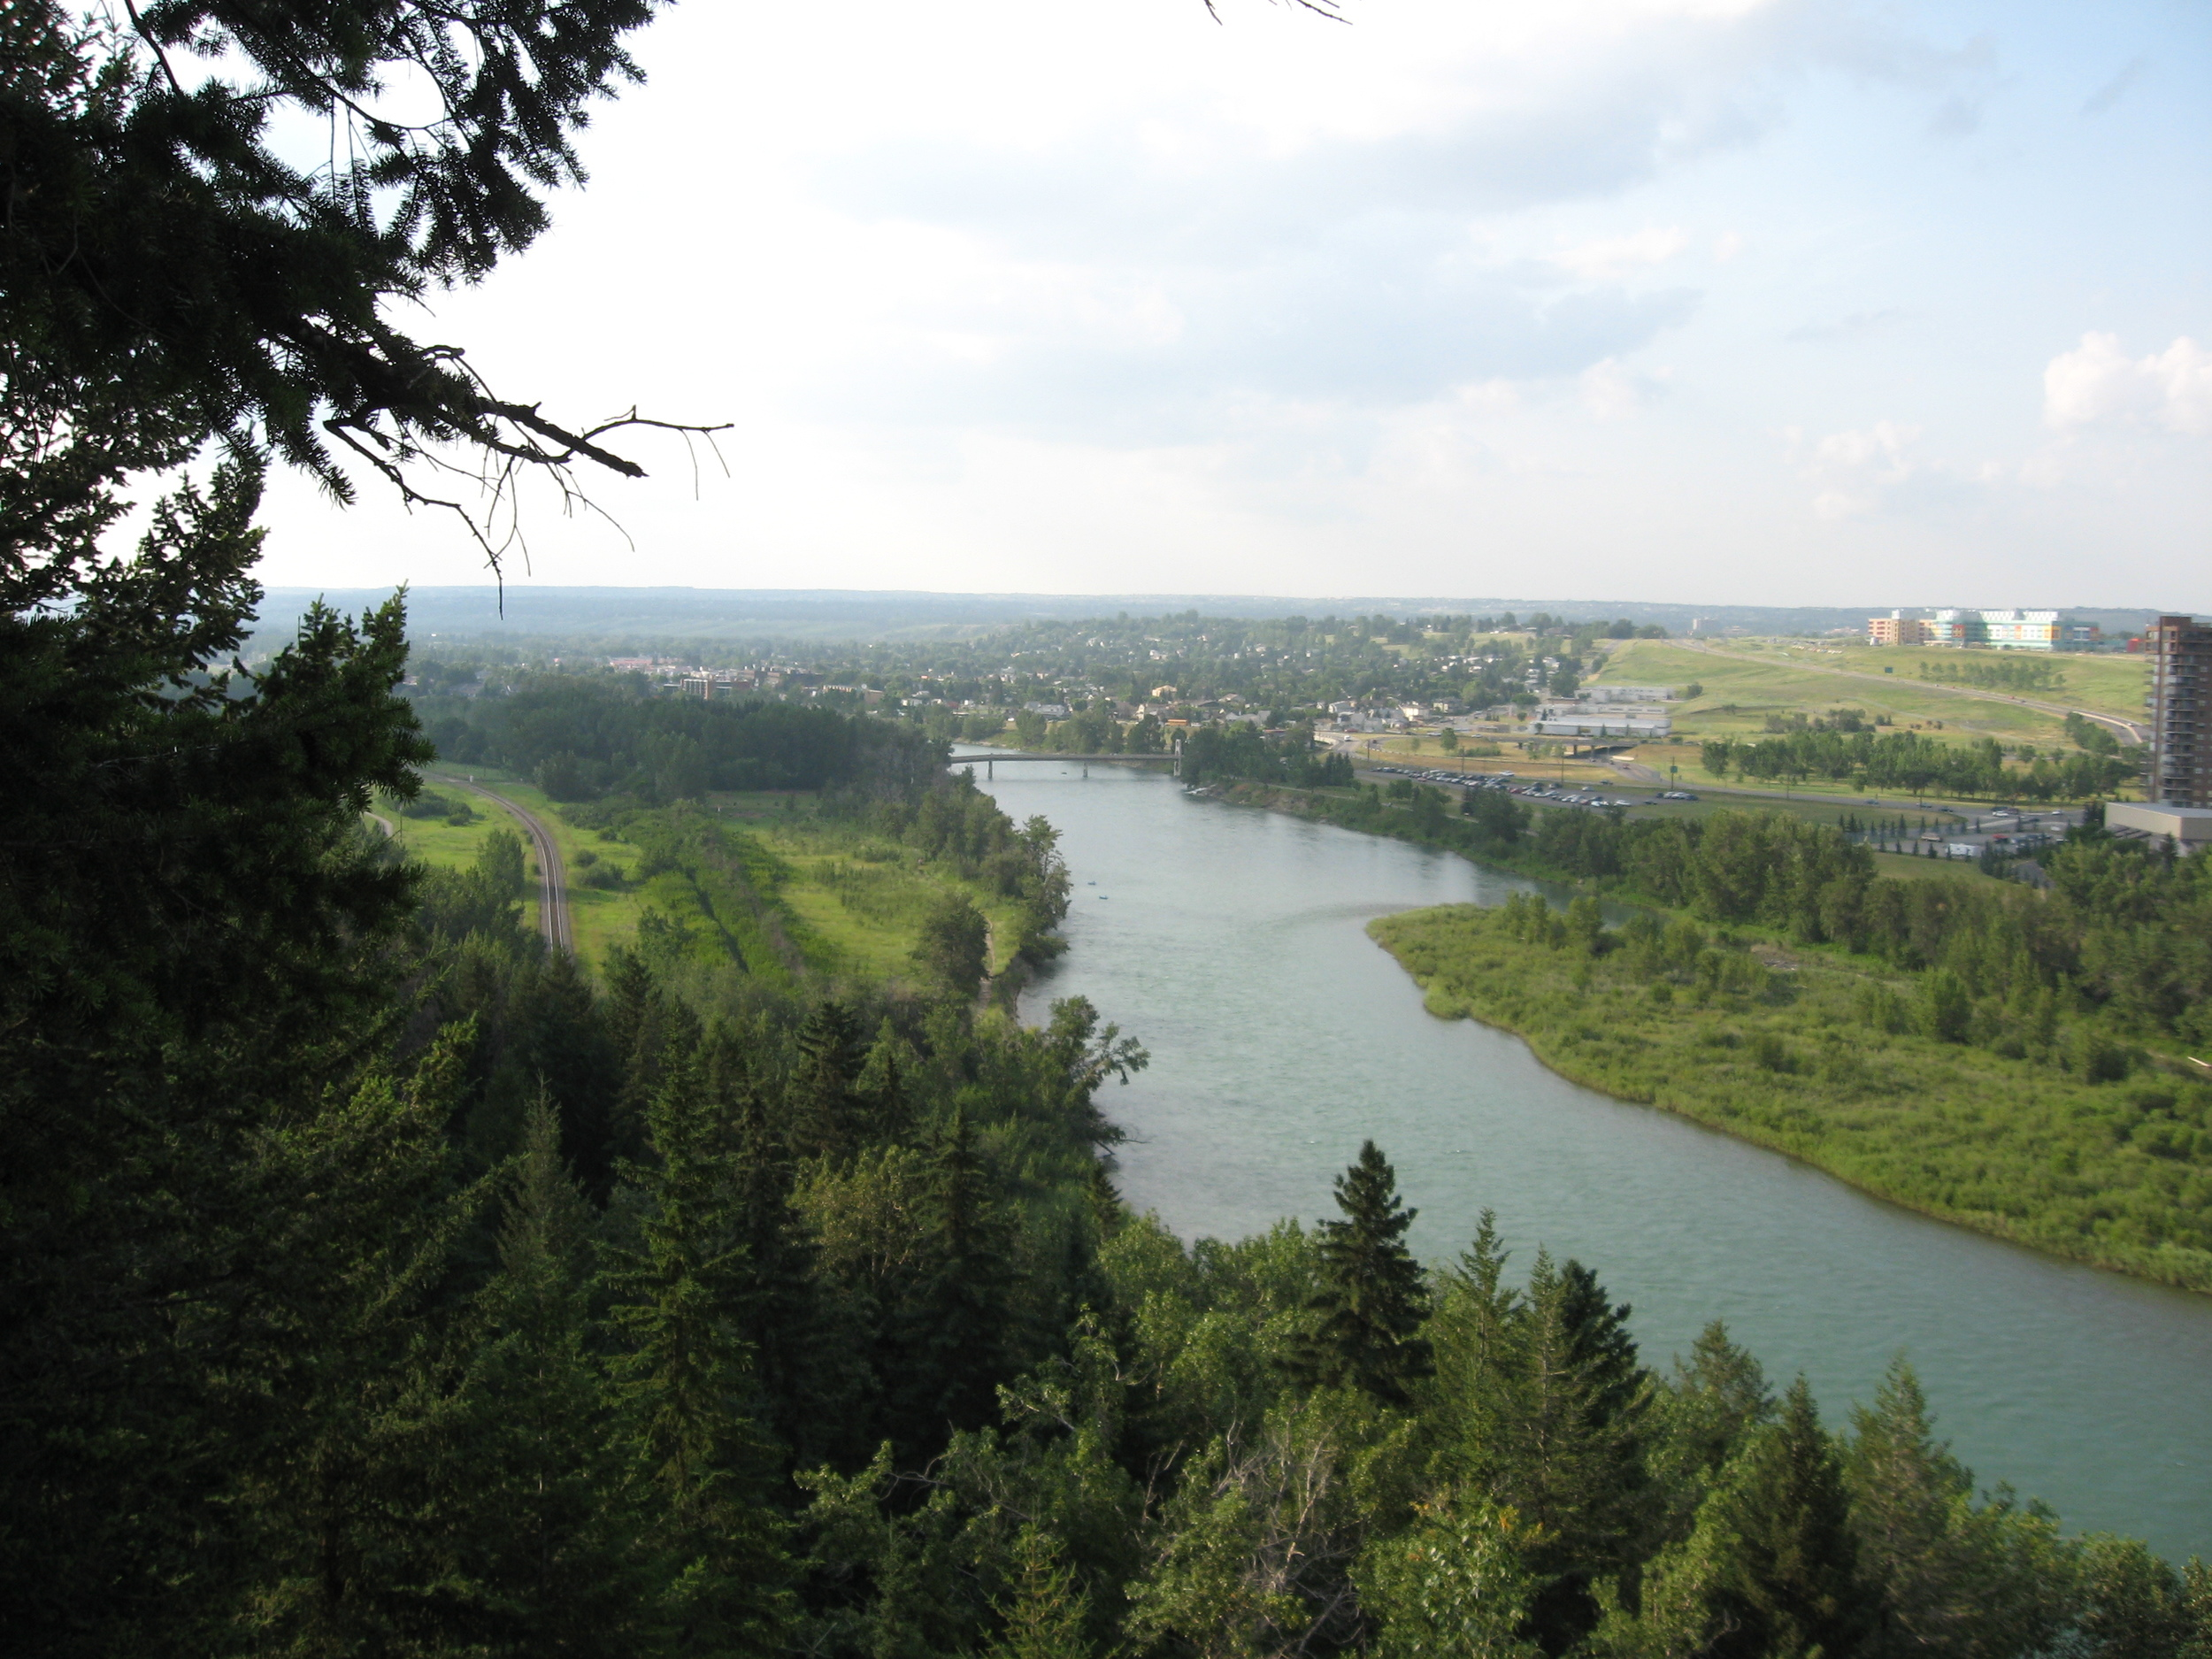 The Douglas Fir trail climbs up the escarpment created by the Bow River, offering spectacular views of the river valley west.